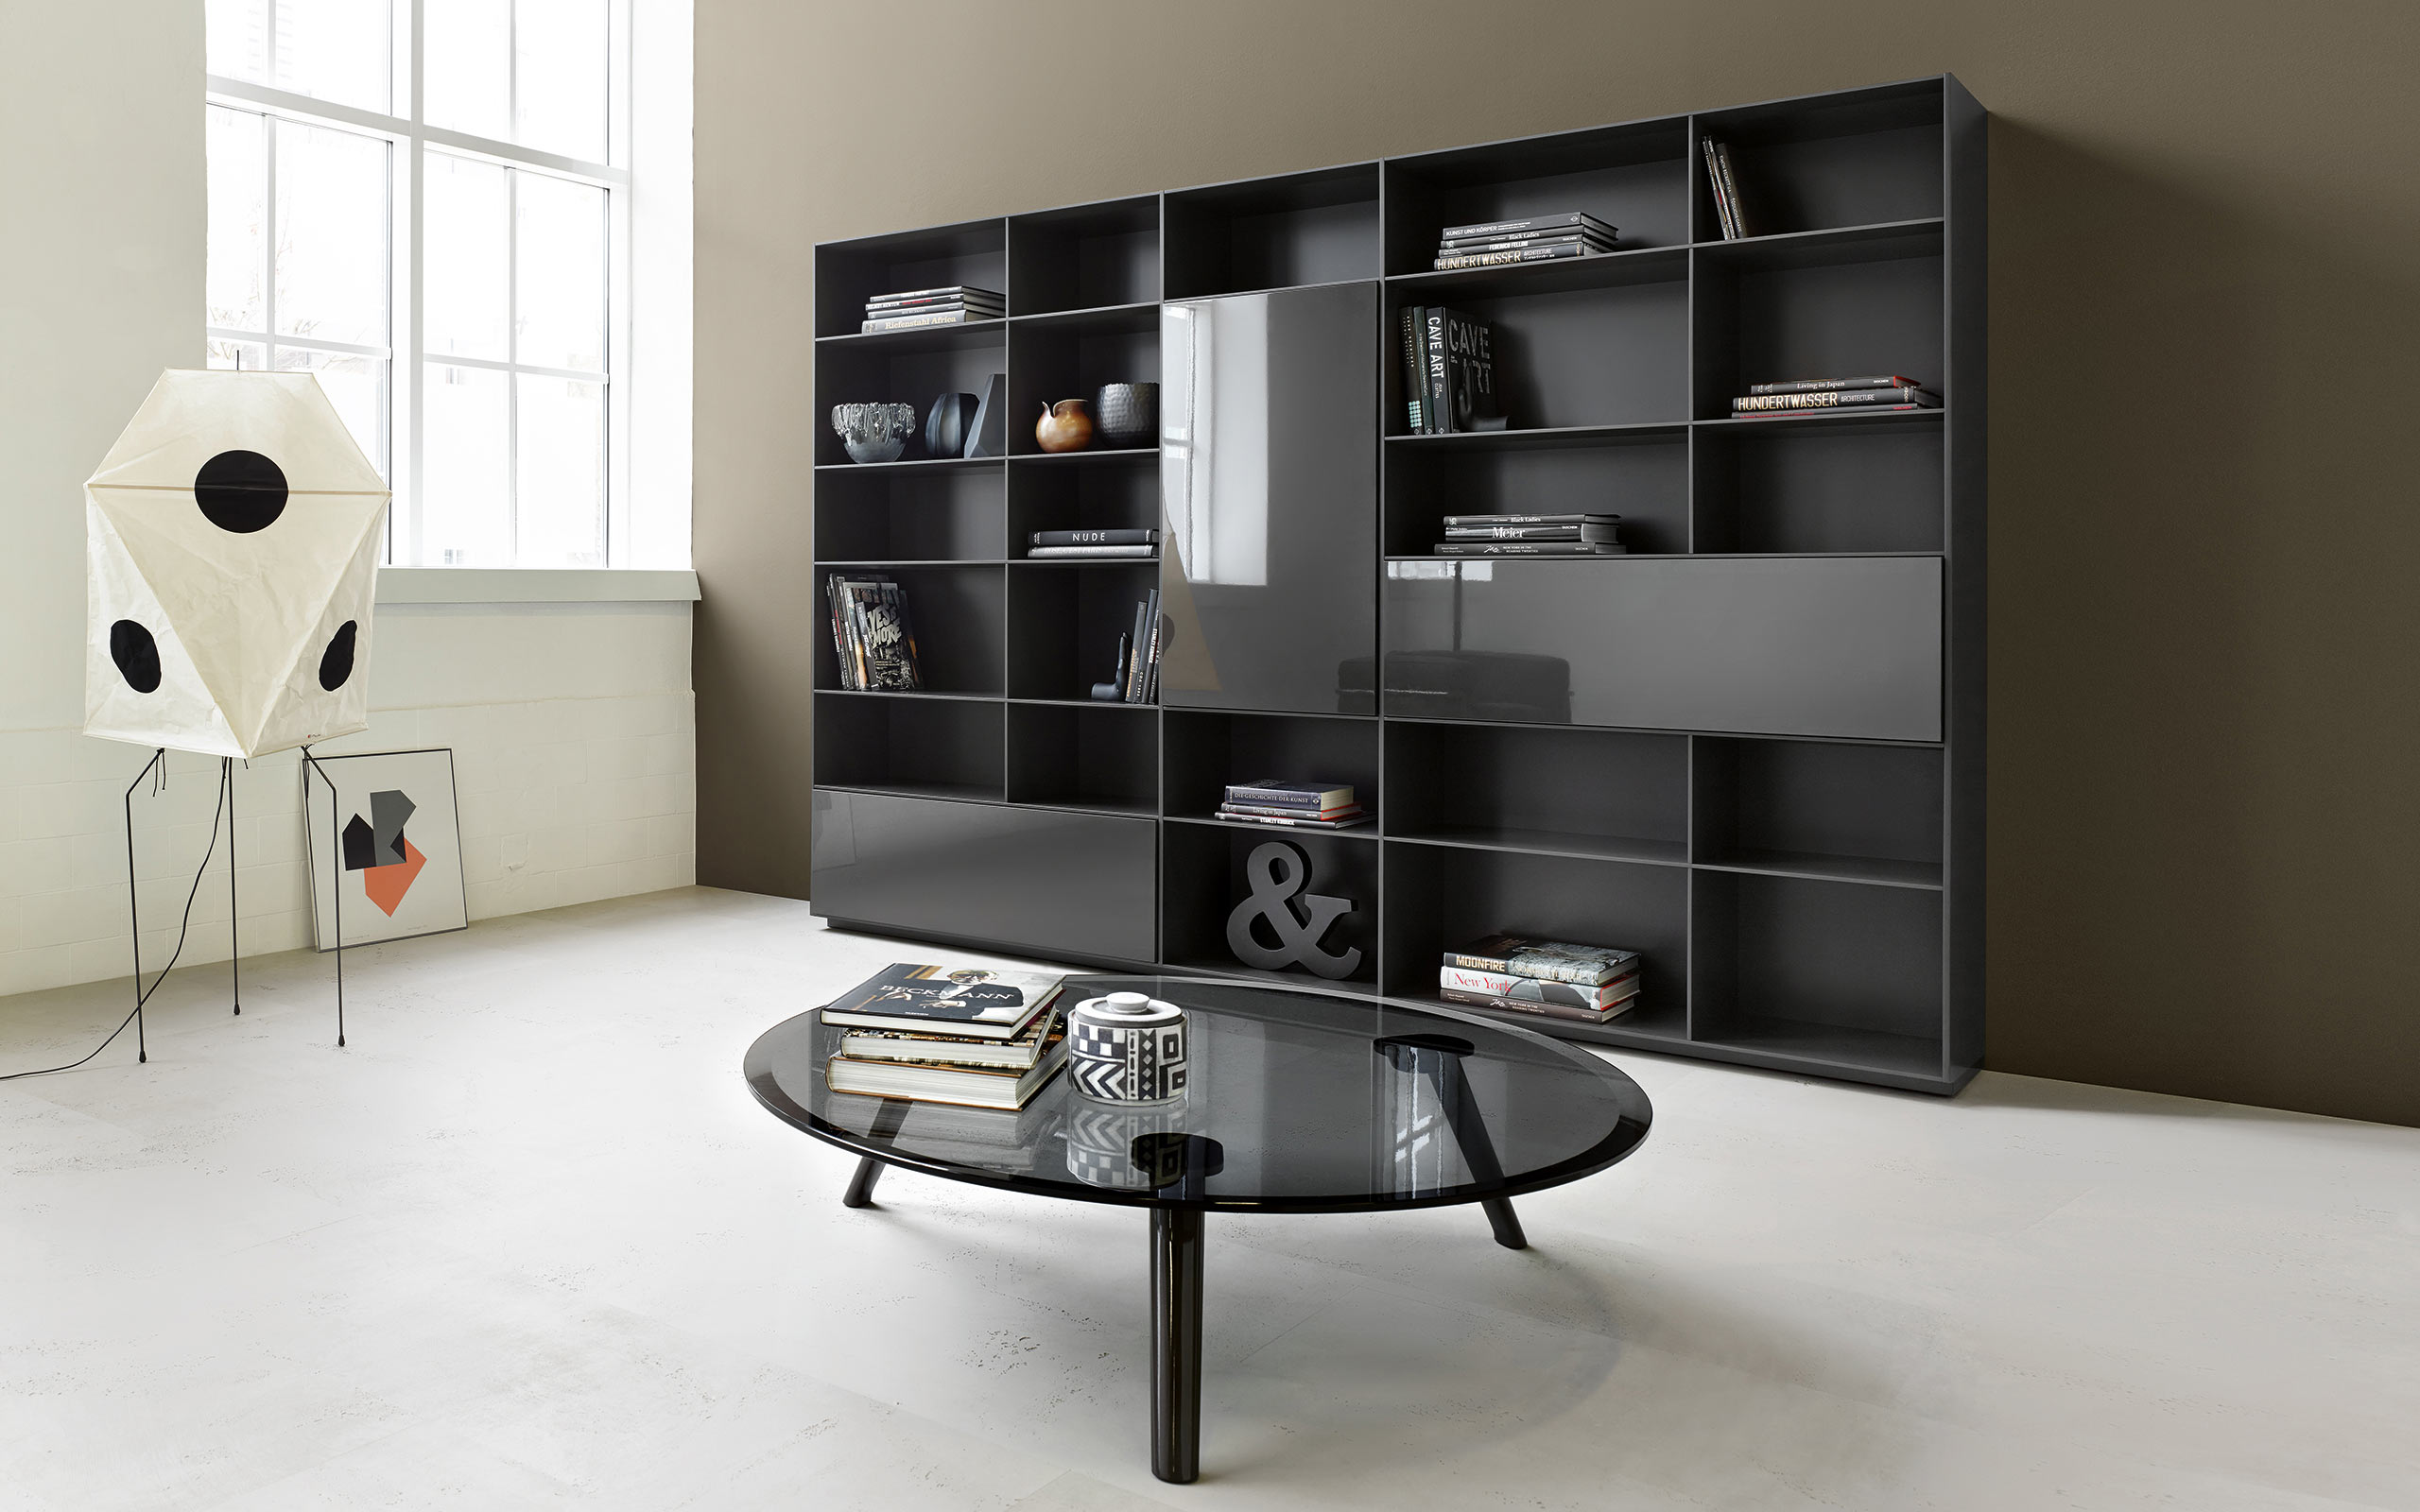 held wohnkomfort exklusives design f r individualisten. Black Bedroom Furniture Sets. Home Design Ideas